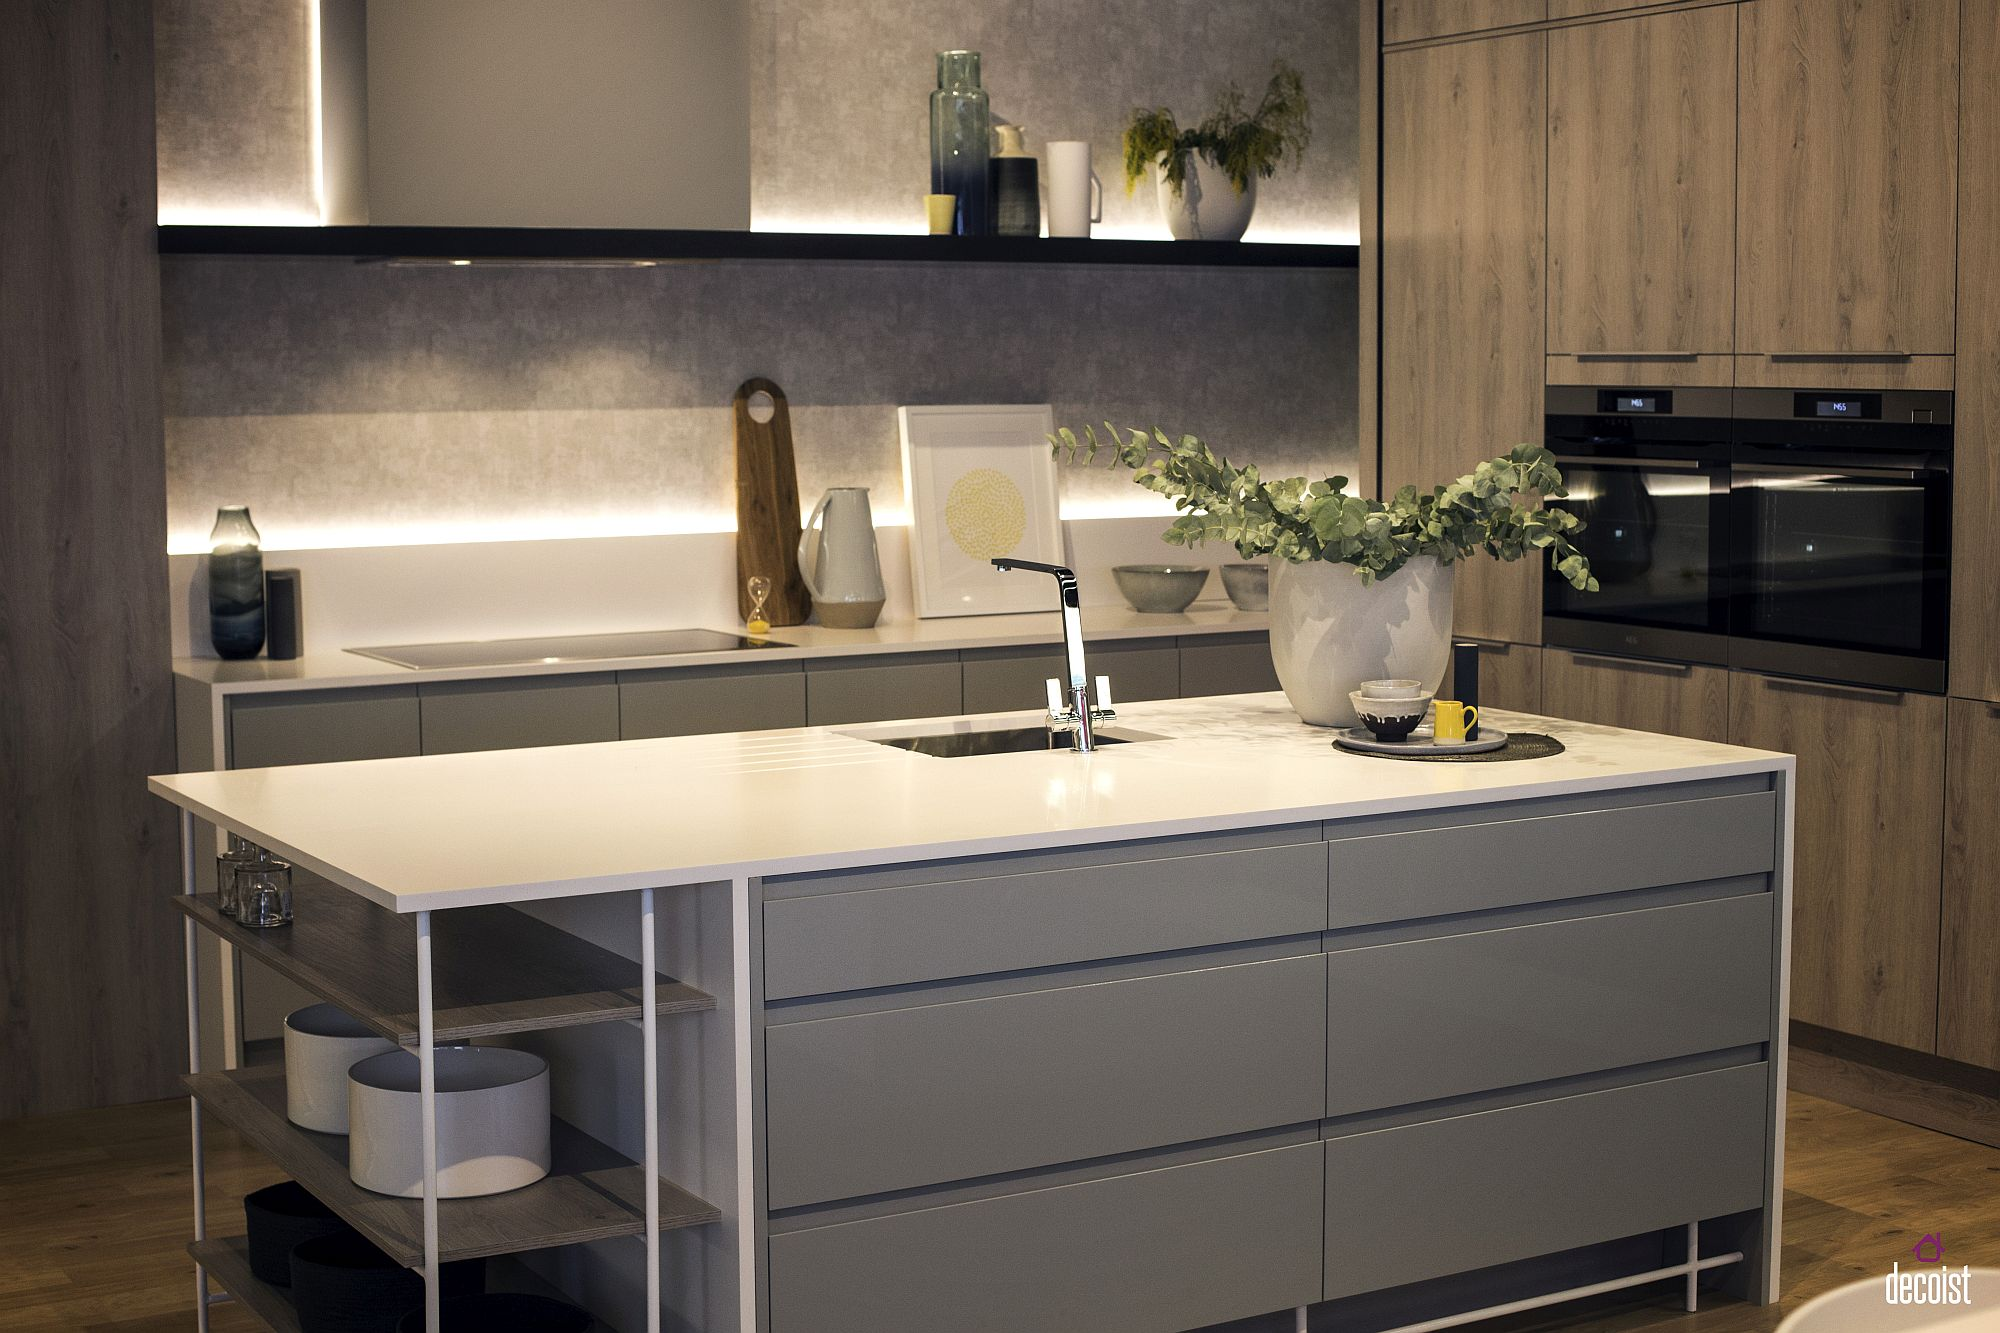 Light gray blends in beautifully with white in the modern kitchen